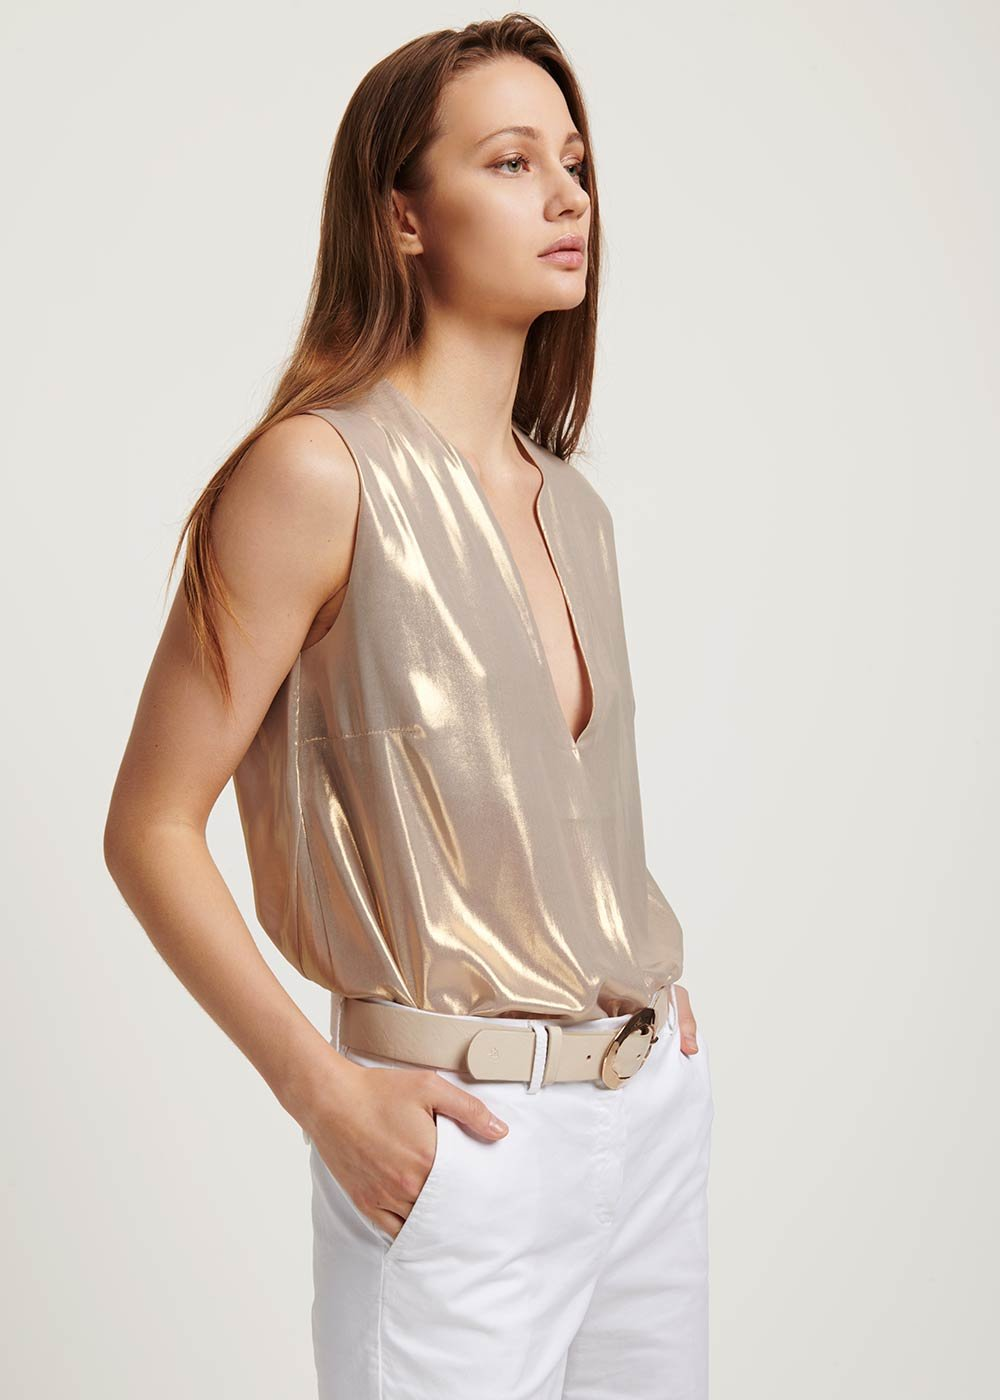 Tom laminated top - Gold - Woman